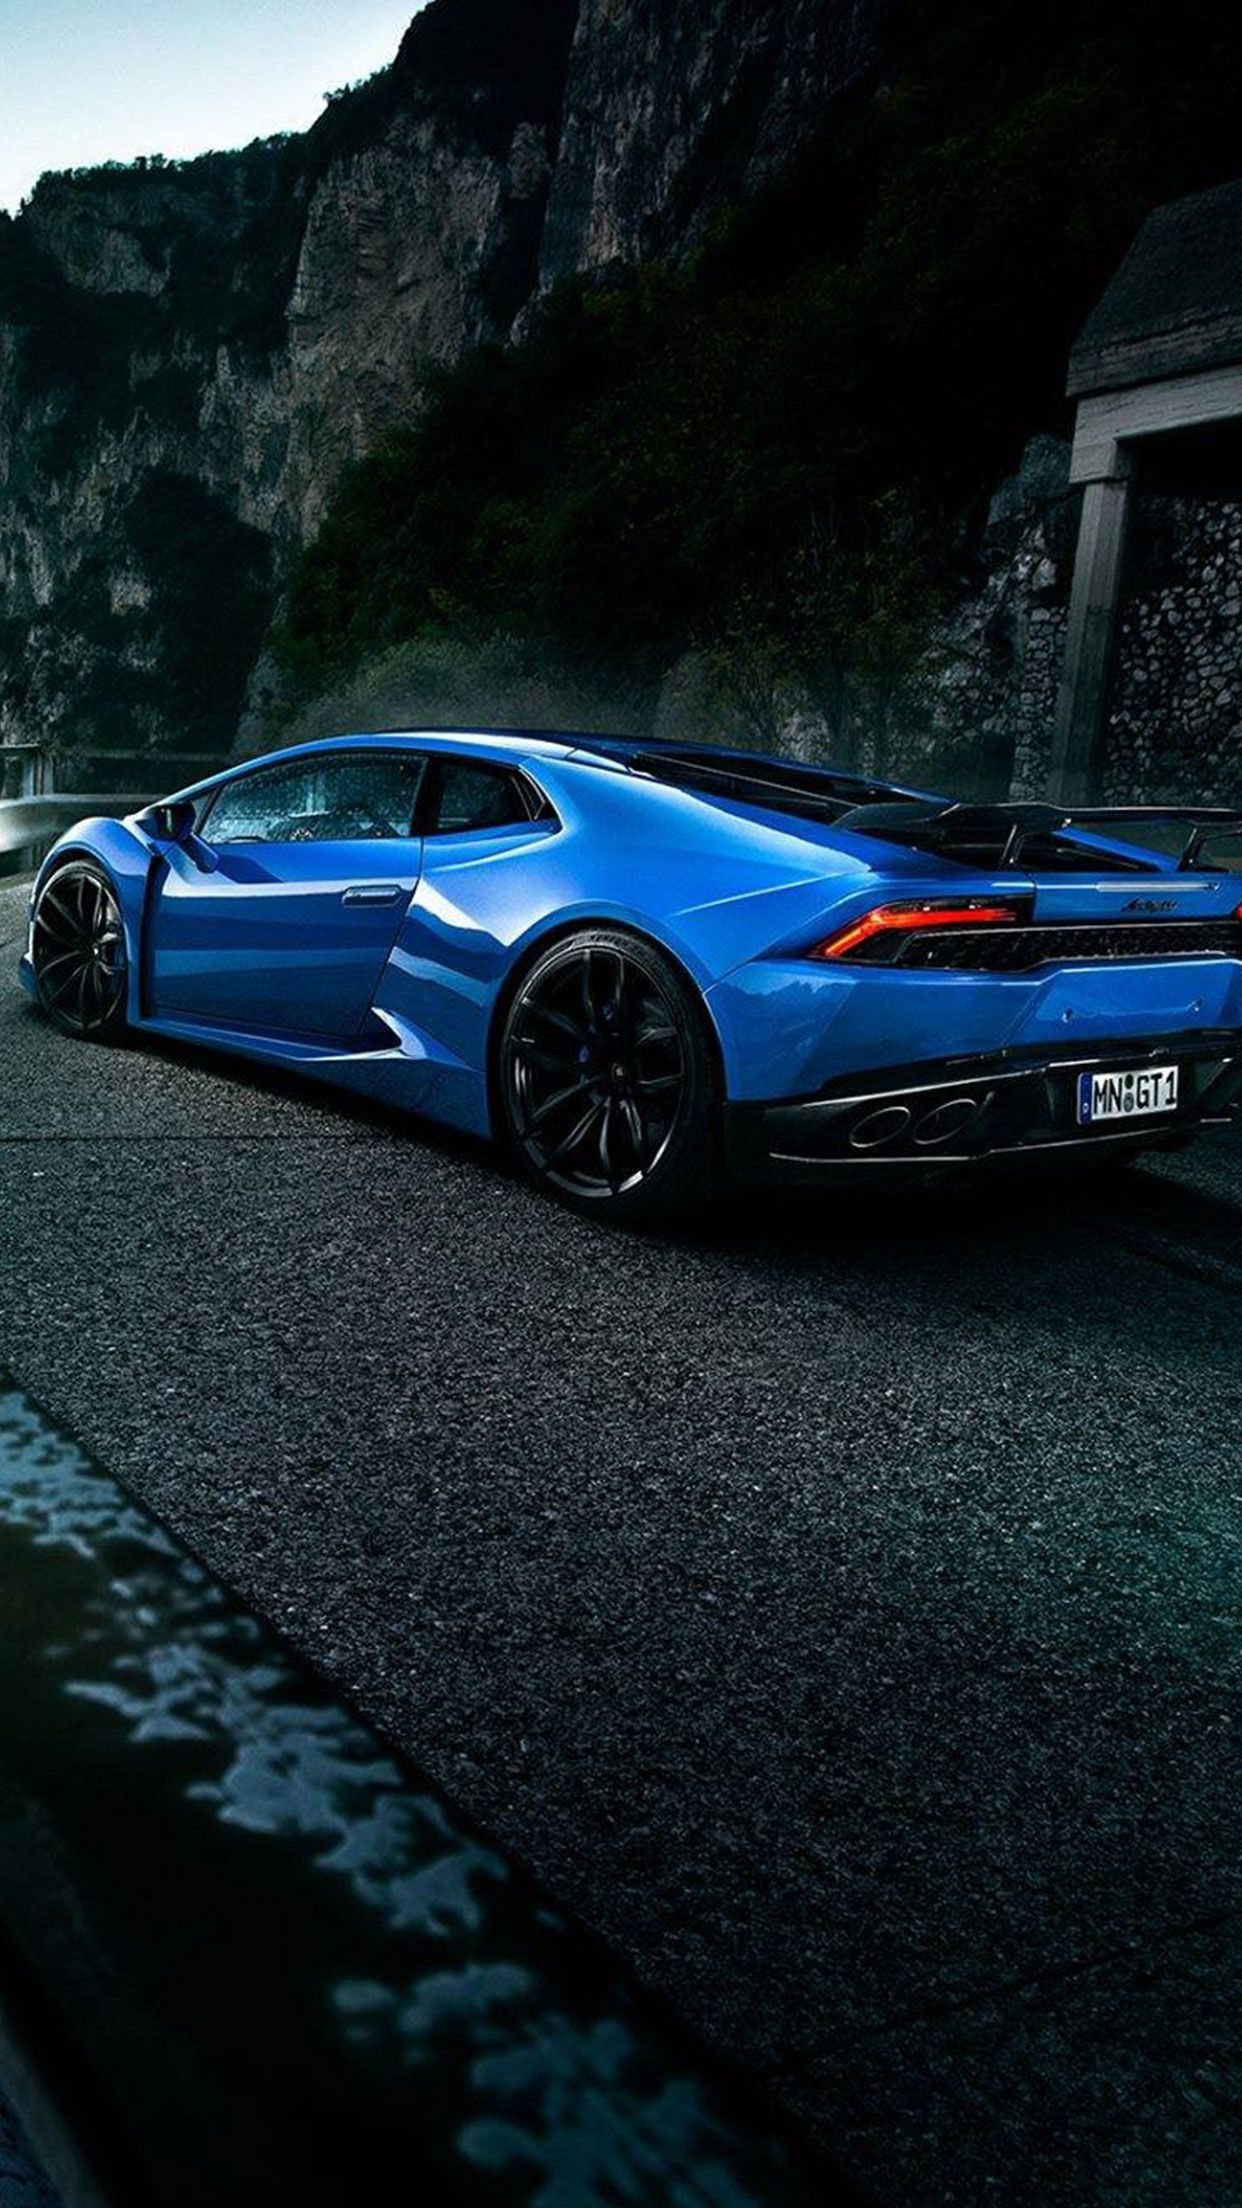 Blue Lamborghini Car Wallpaper Iphone Android Blue Lamborghini